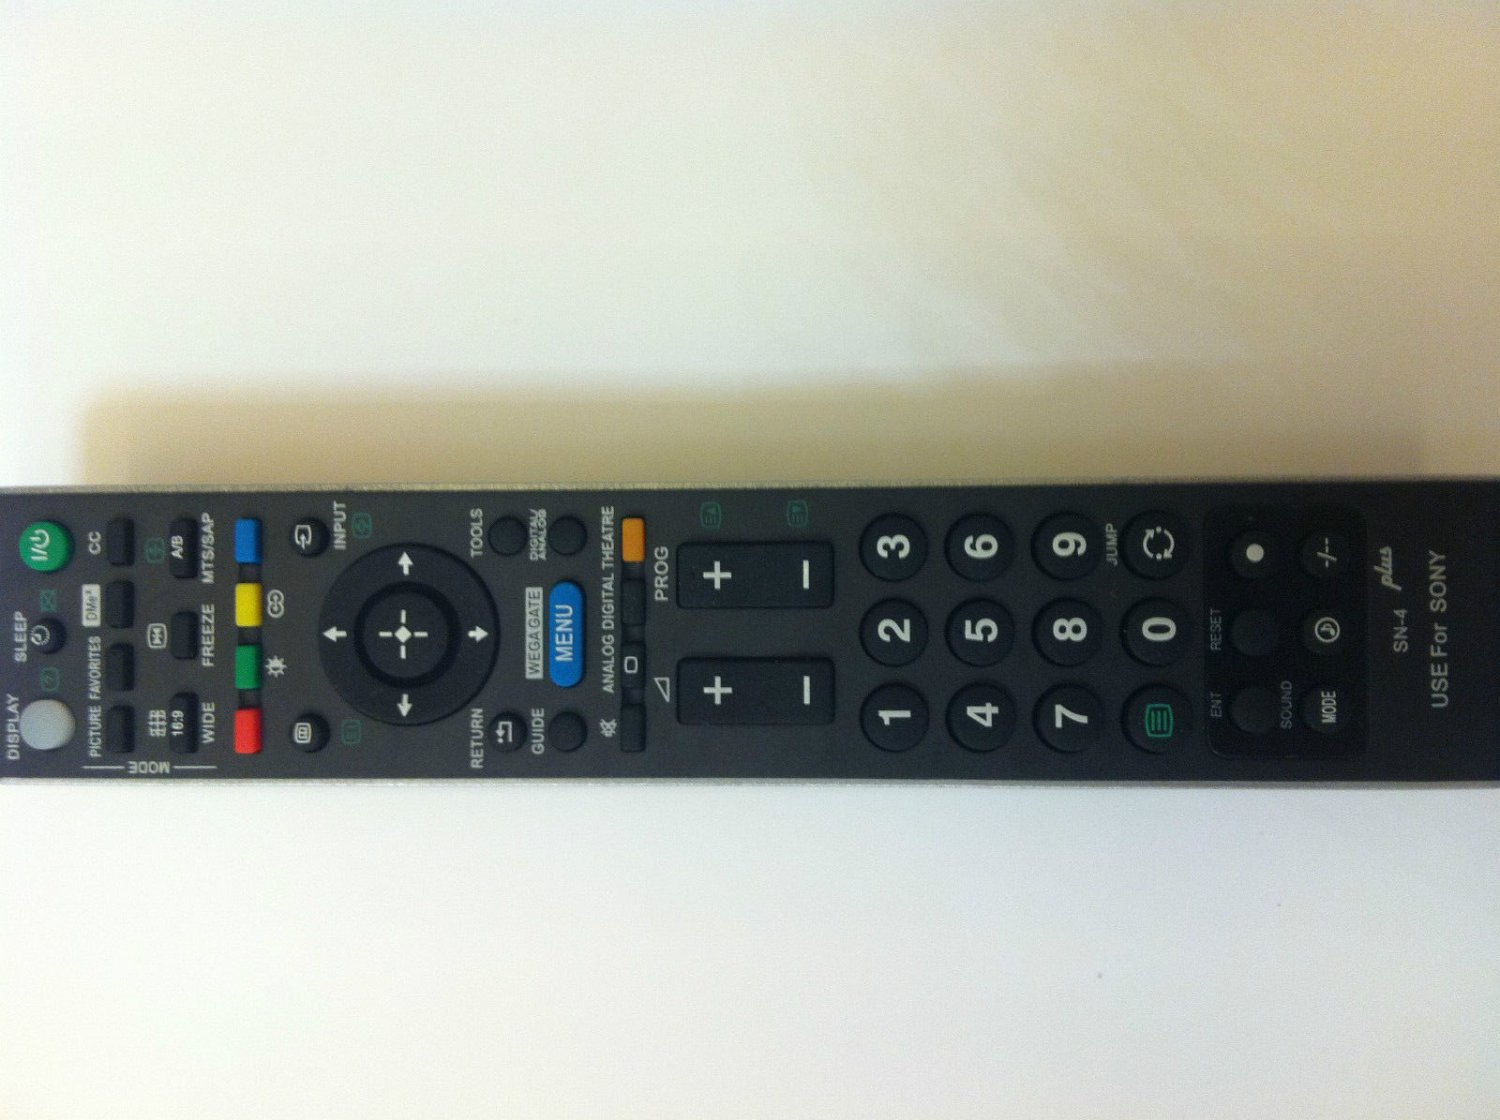 New Universal Remote for all SONY TV